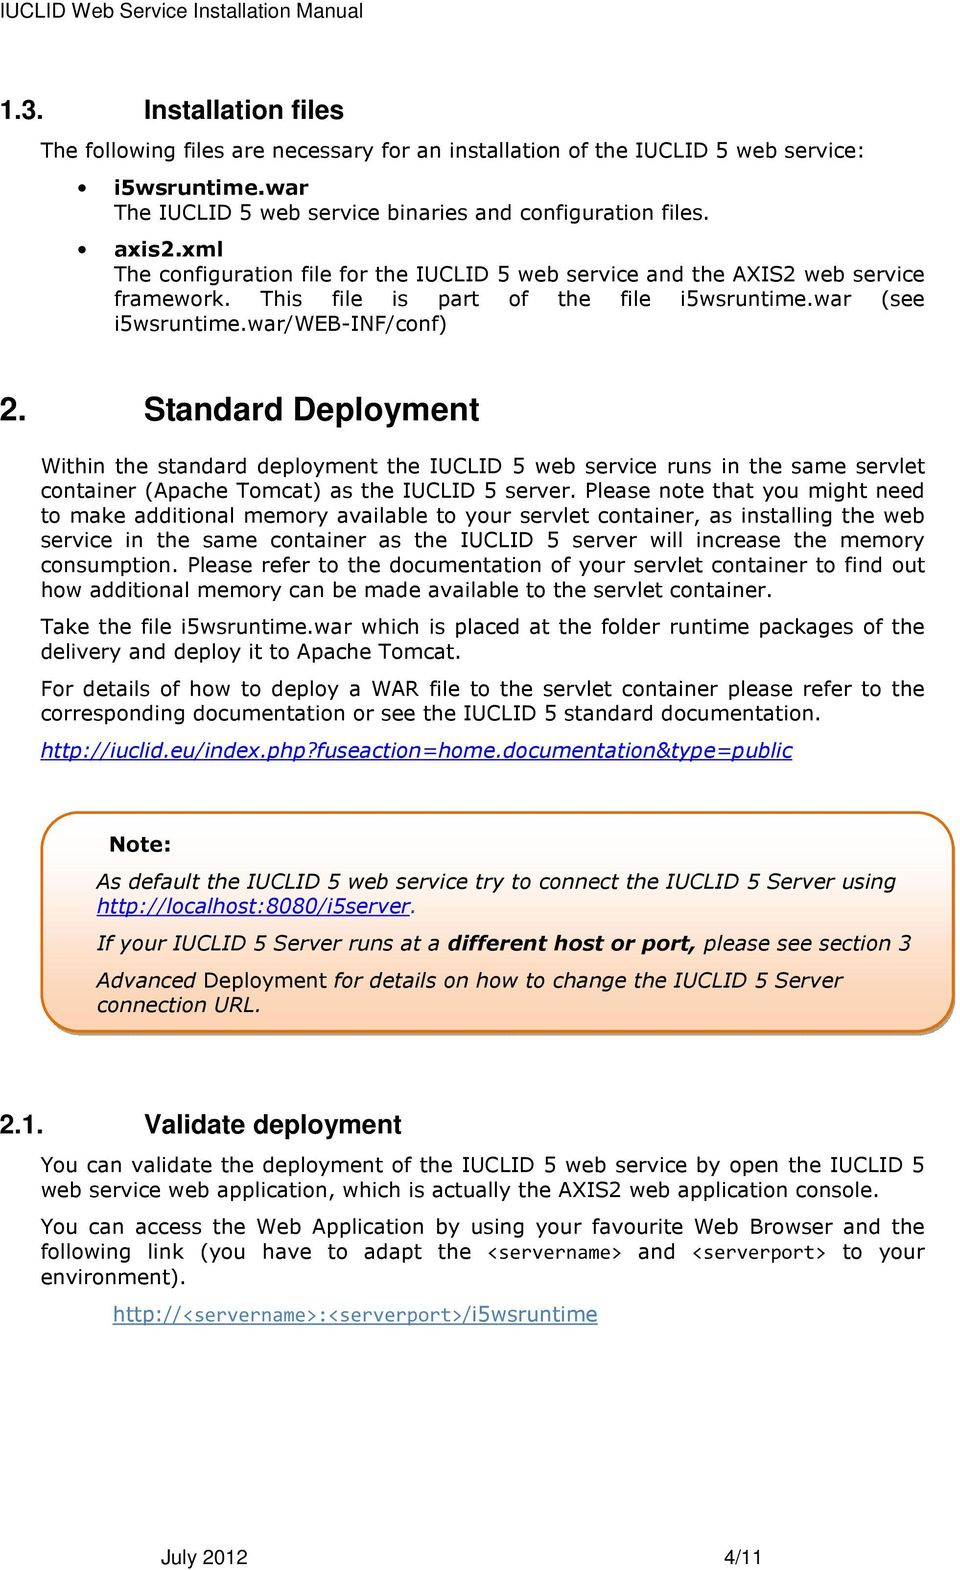 Standard Deployment Within the standard deployment the IUCLID 5 web service runs in the same servlet container (Apache Tomcat) as the IUCLID 5 server.